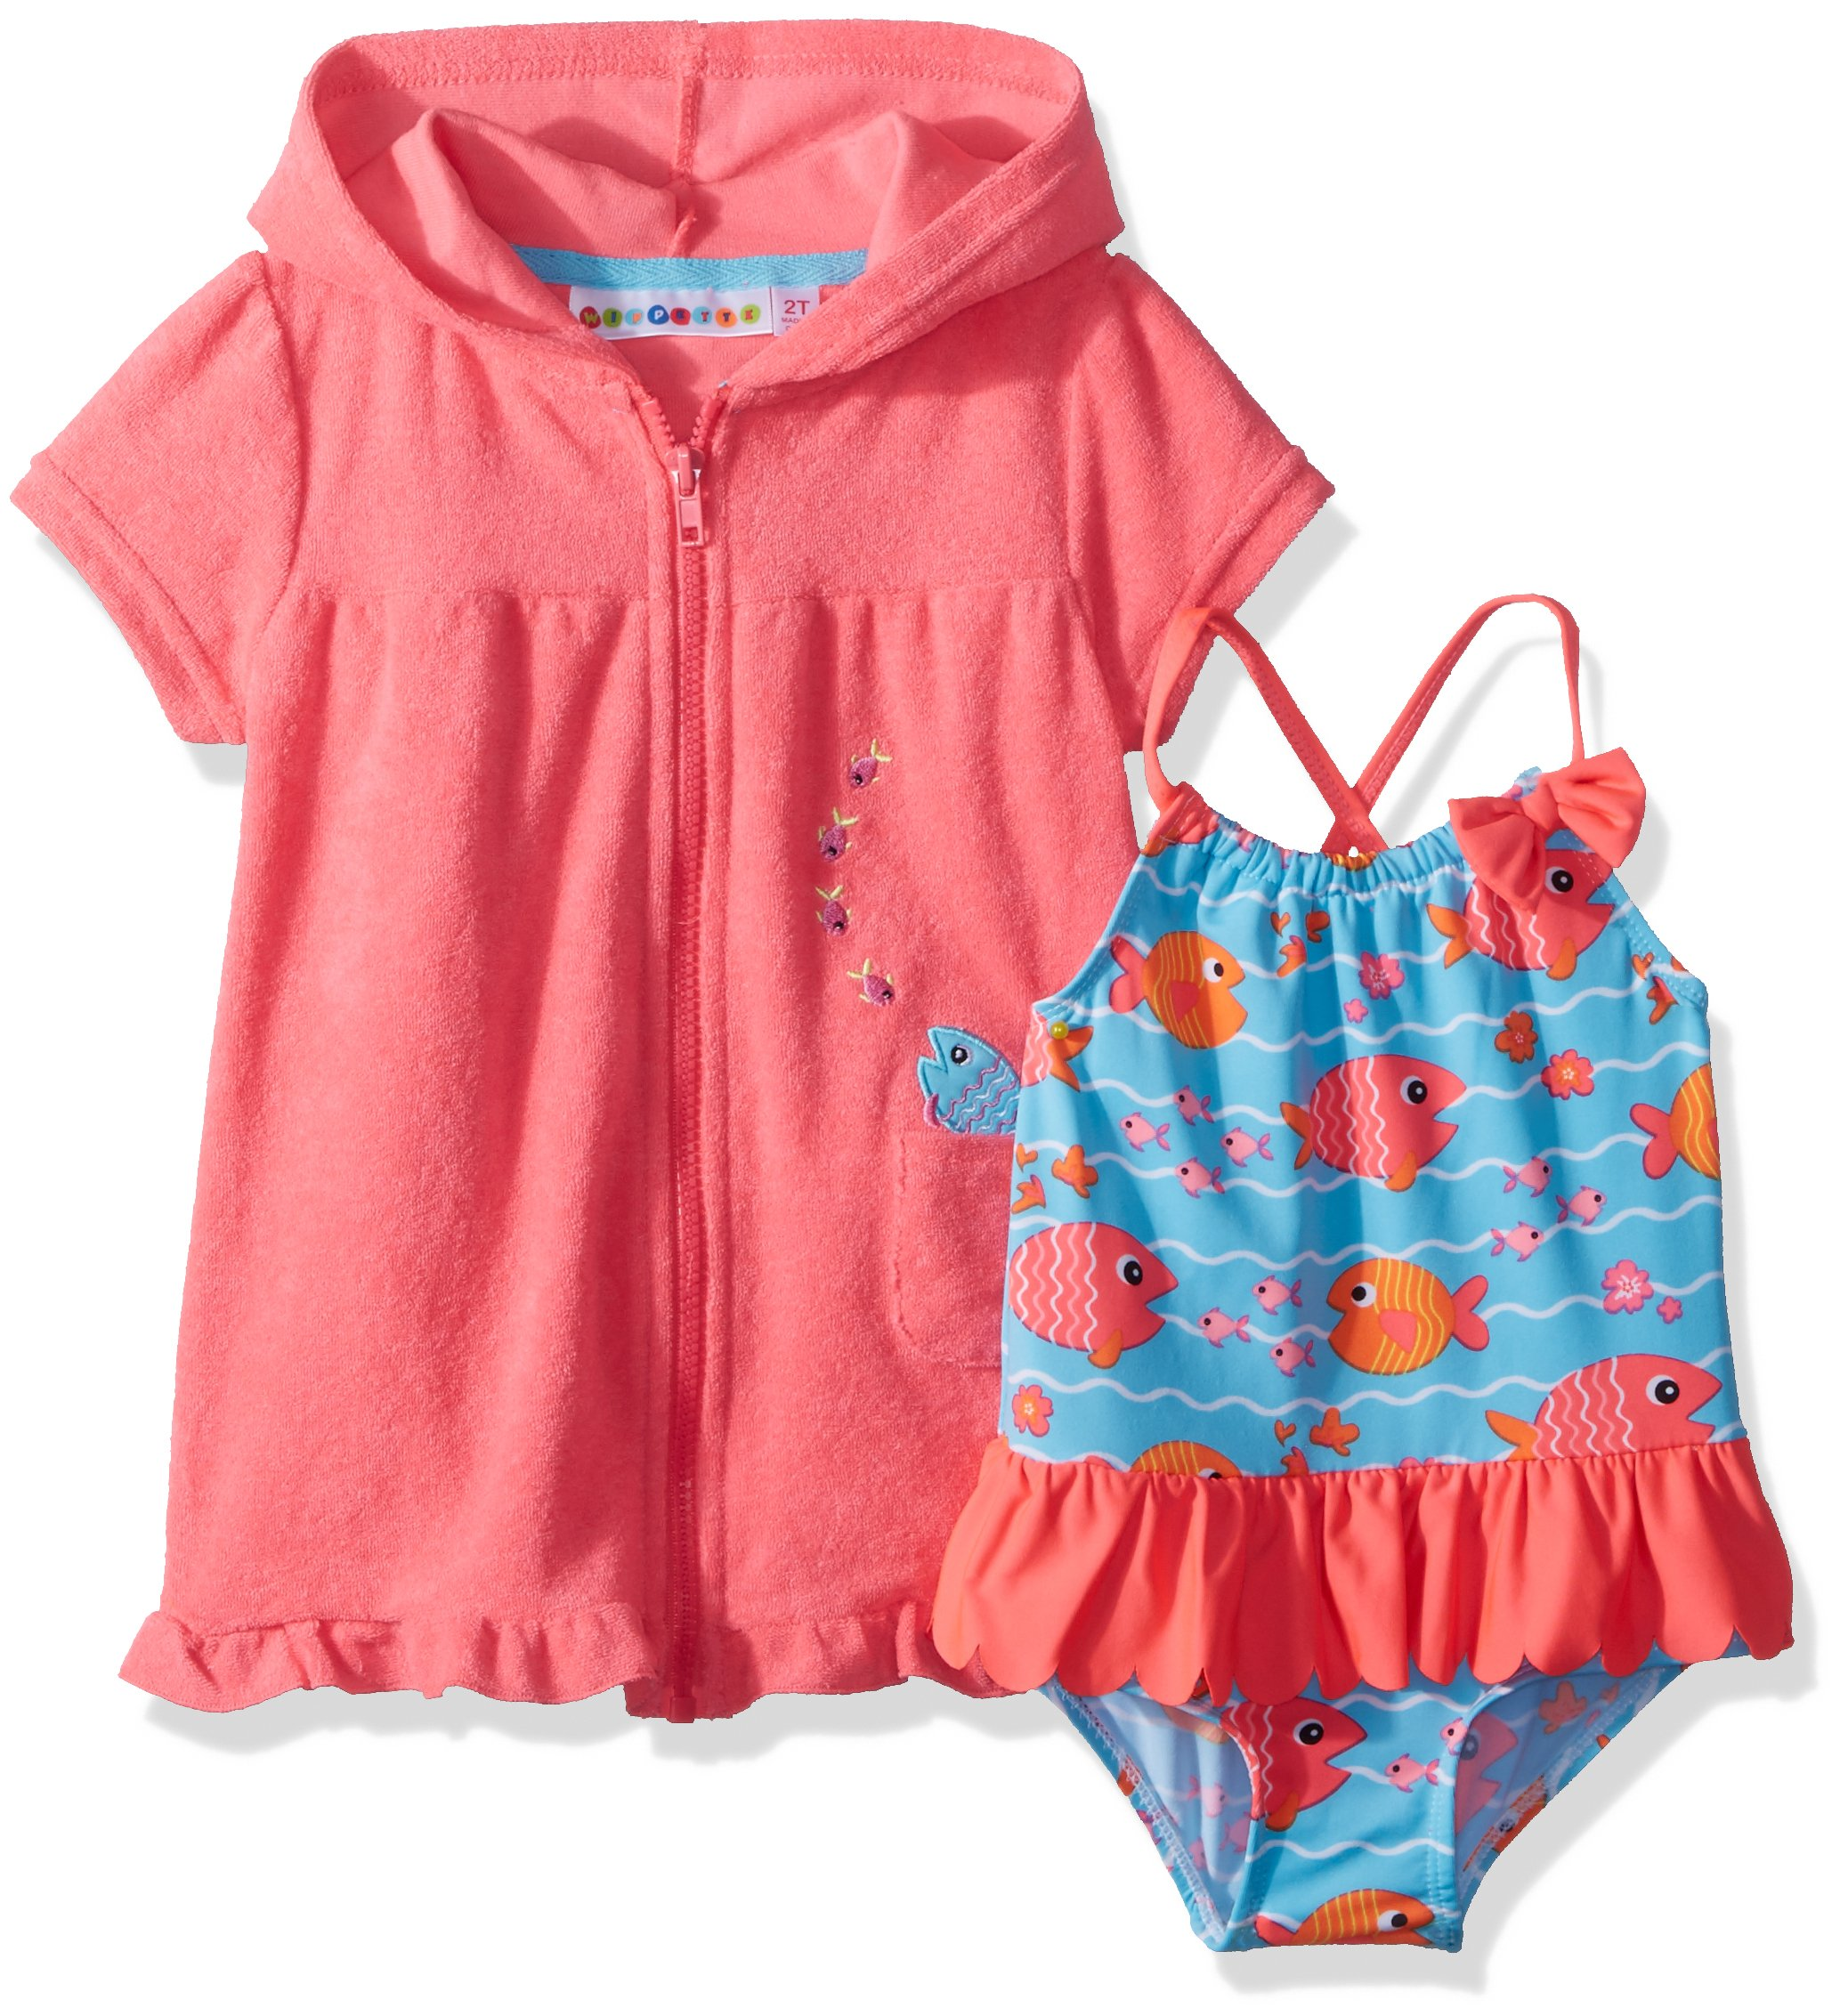 Wippette Toddler Girls' Coverup Set With Fish and Waves, Diva Pink, 3T